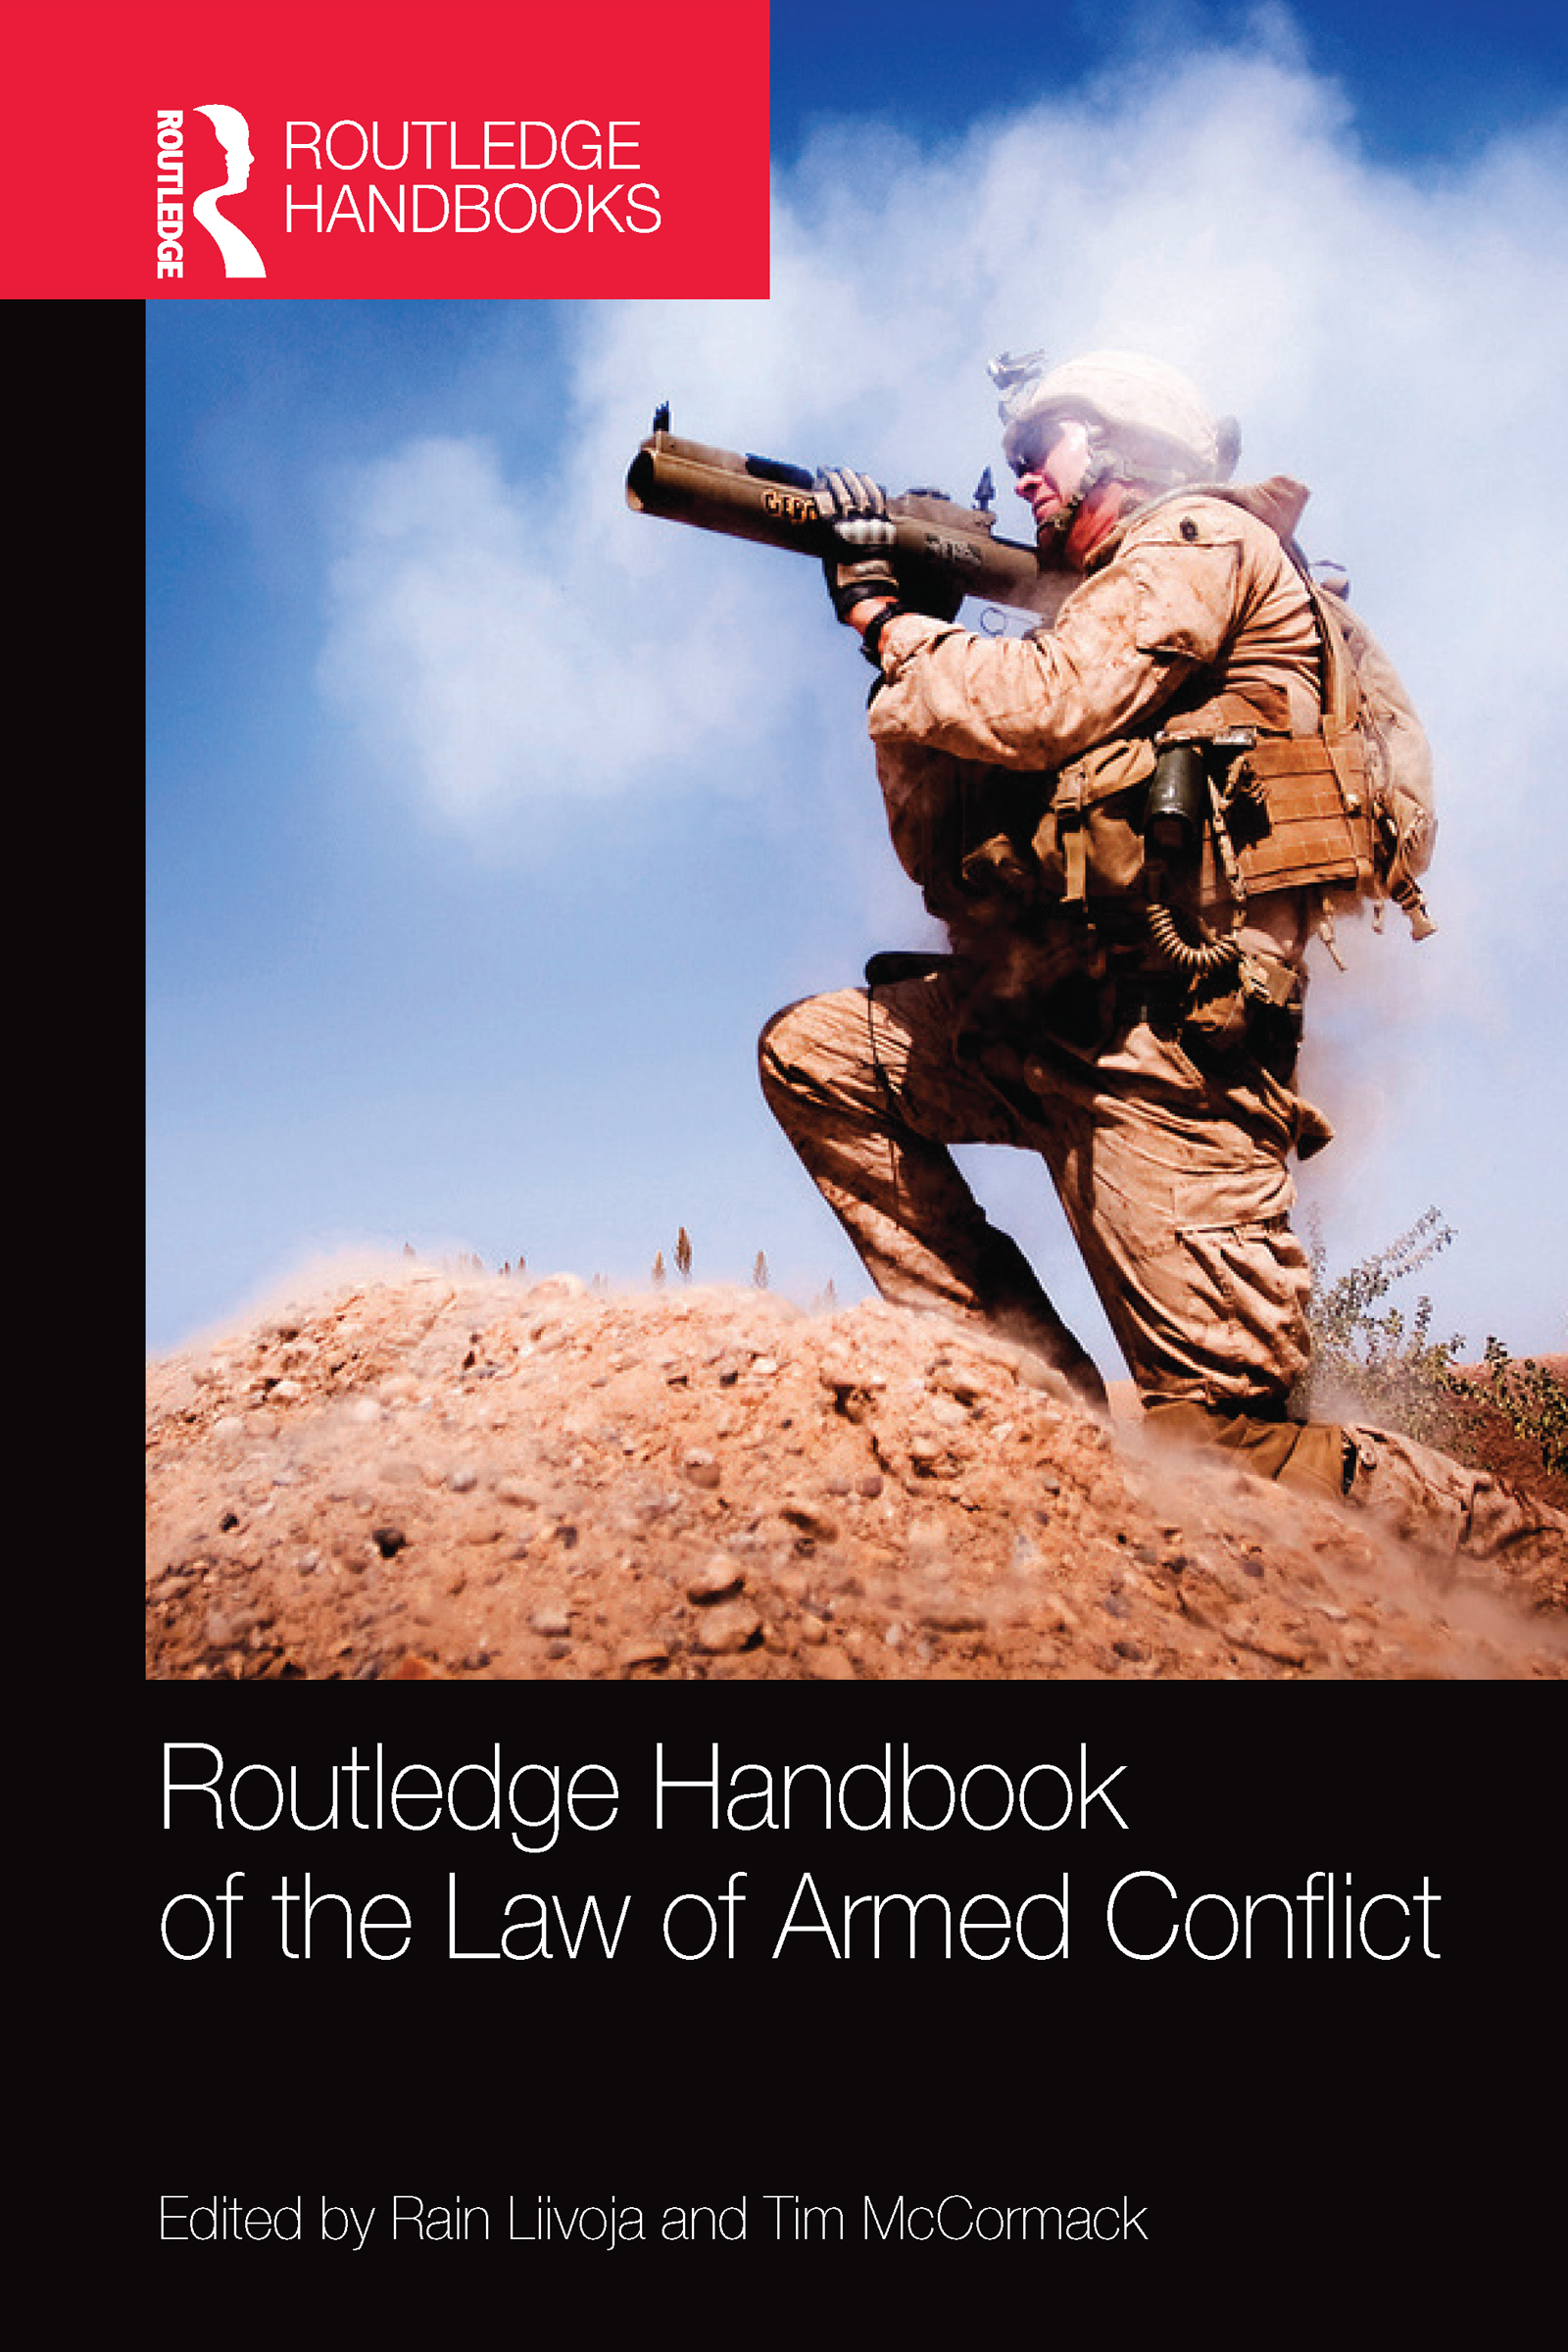 Routledge Handbook of the Law of Armed Conflict